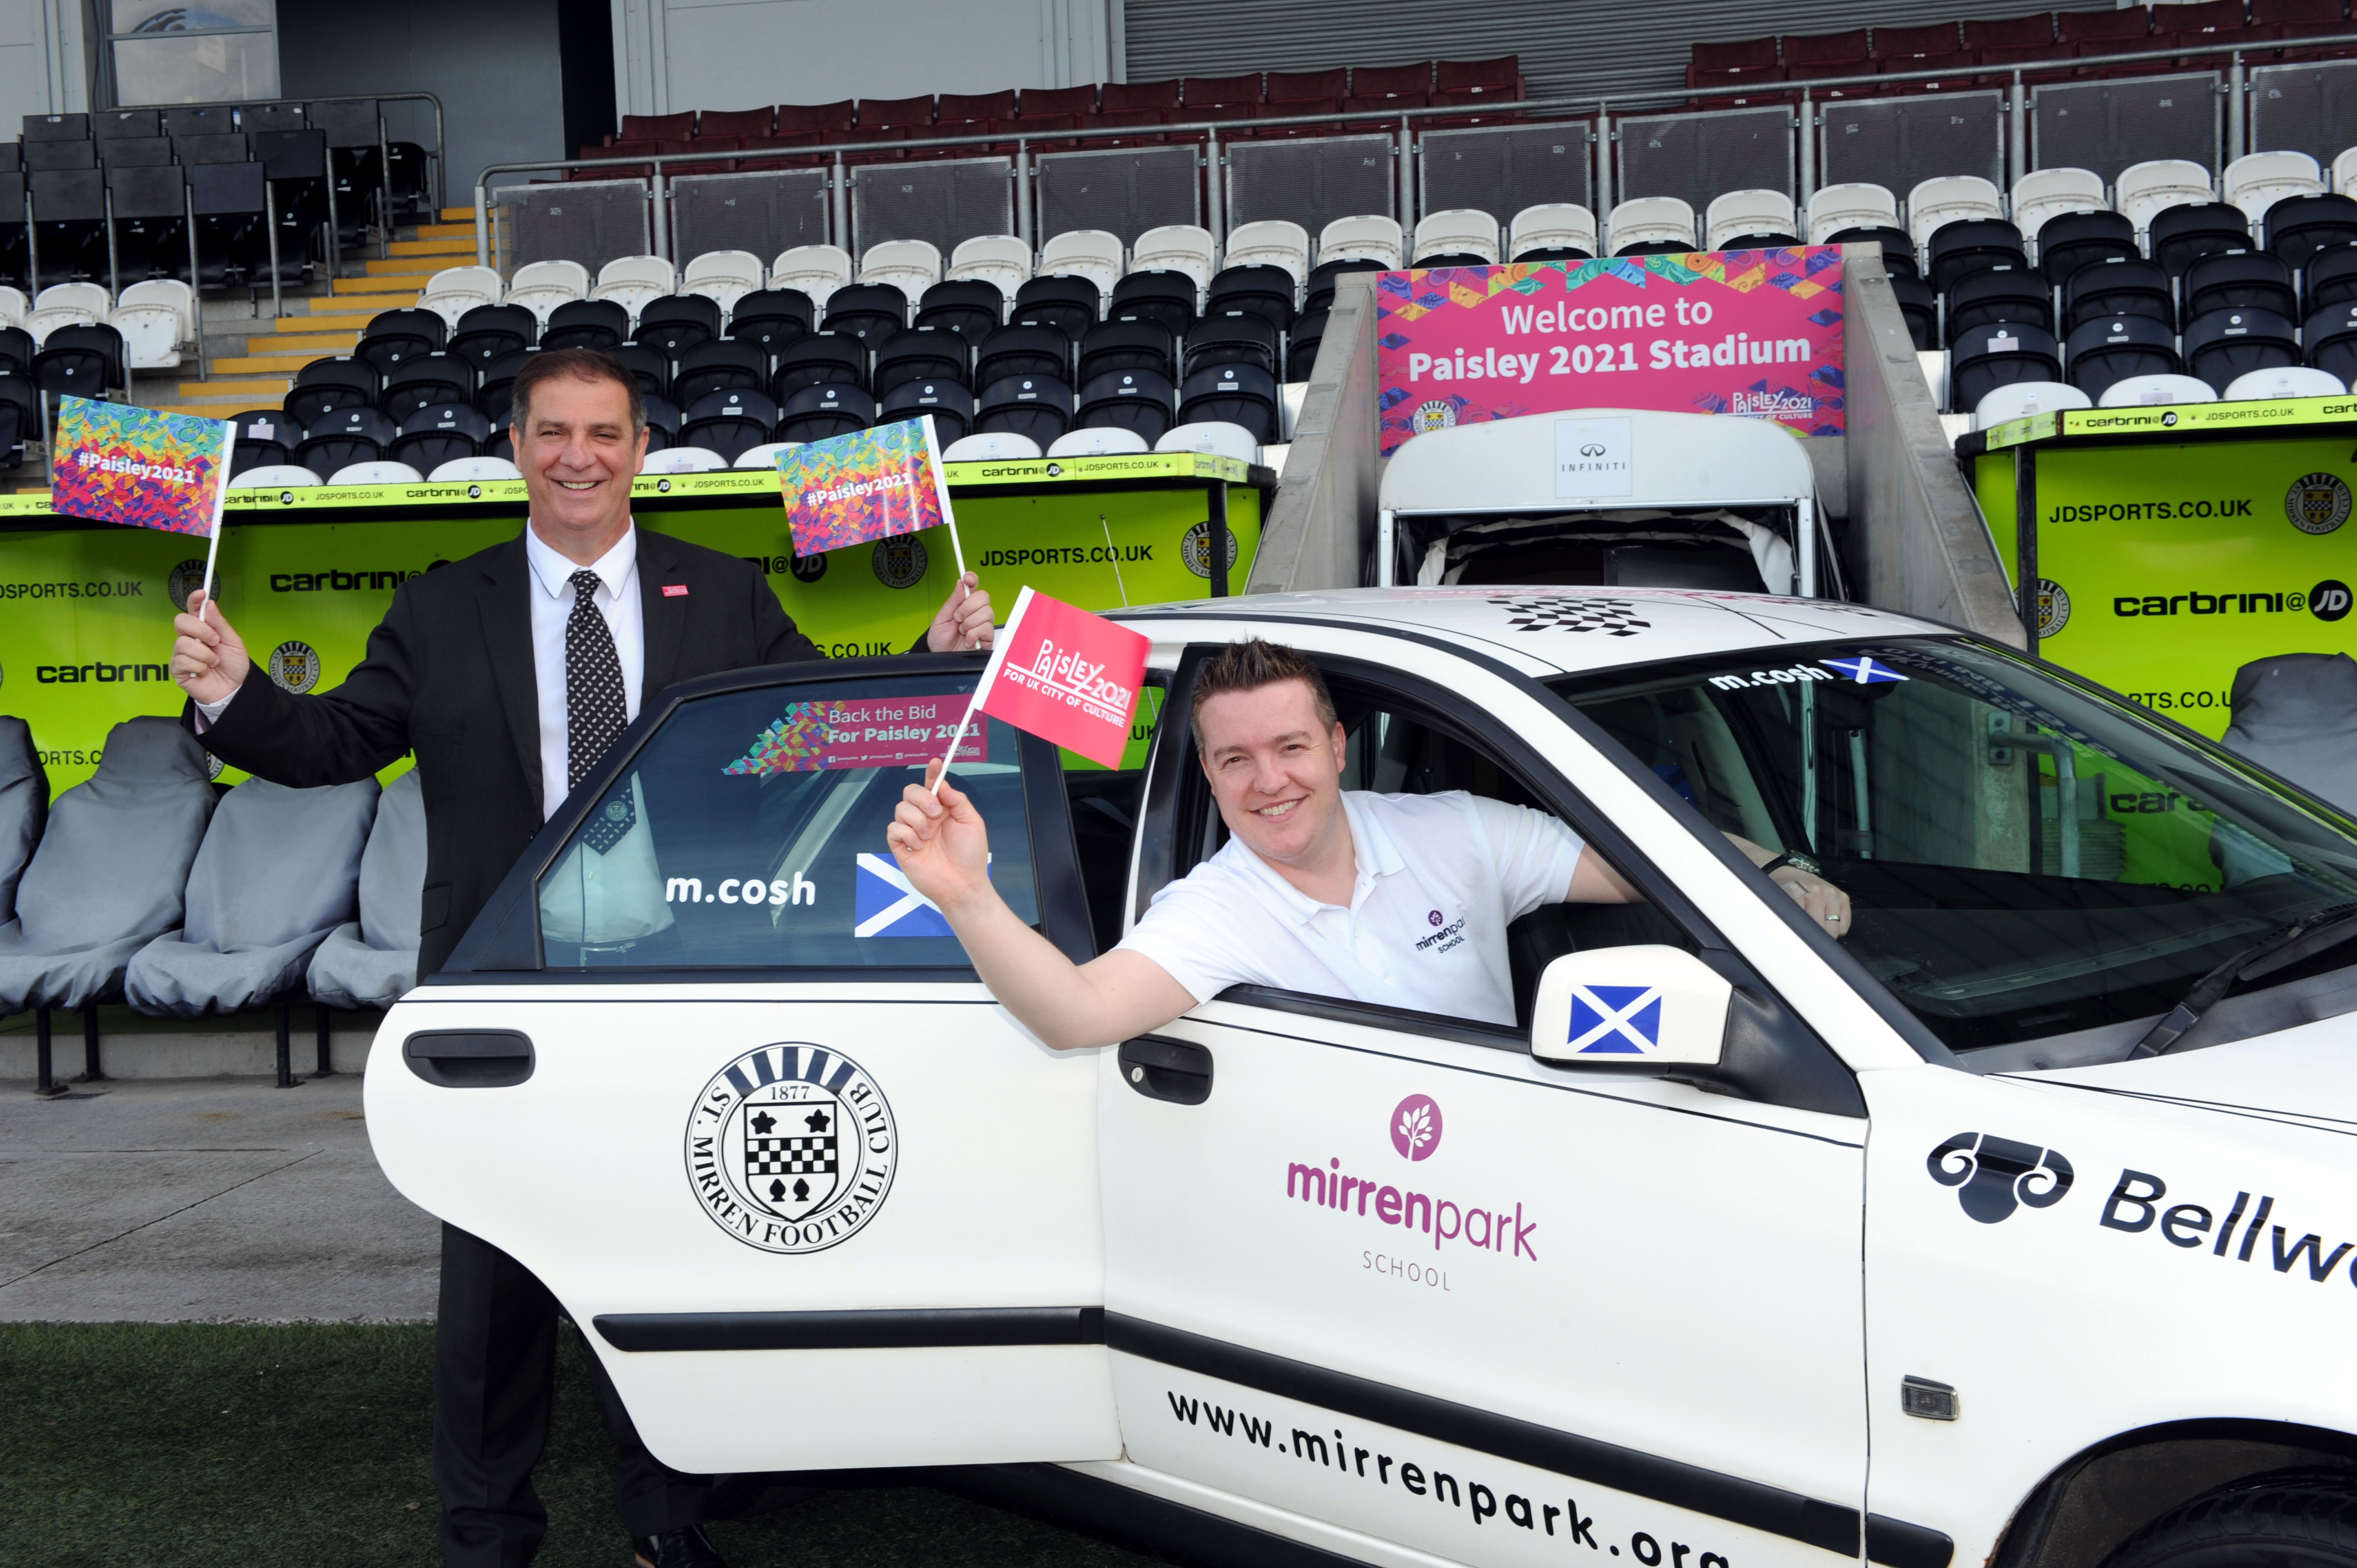 Local man to spread word about Paisley 2021 on adventure from Mirren Park to Monte Carlo